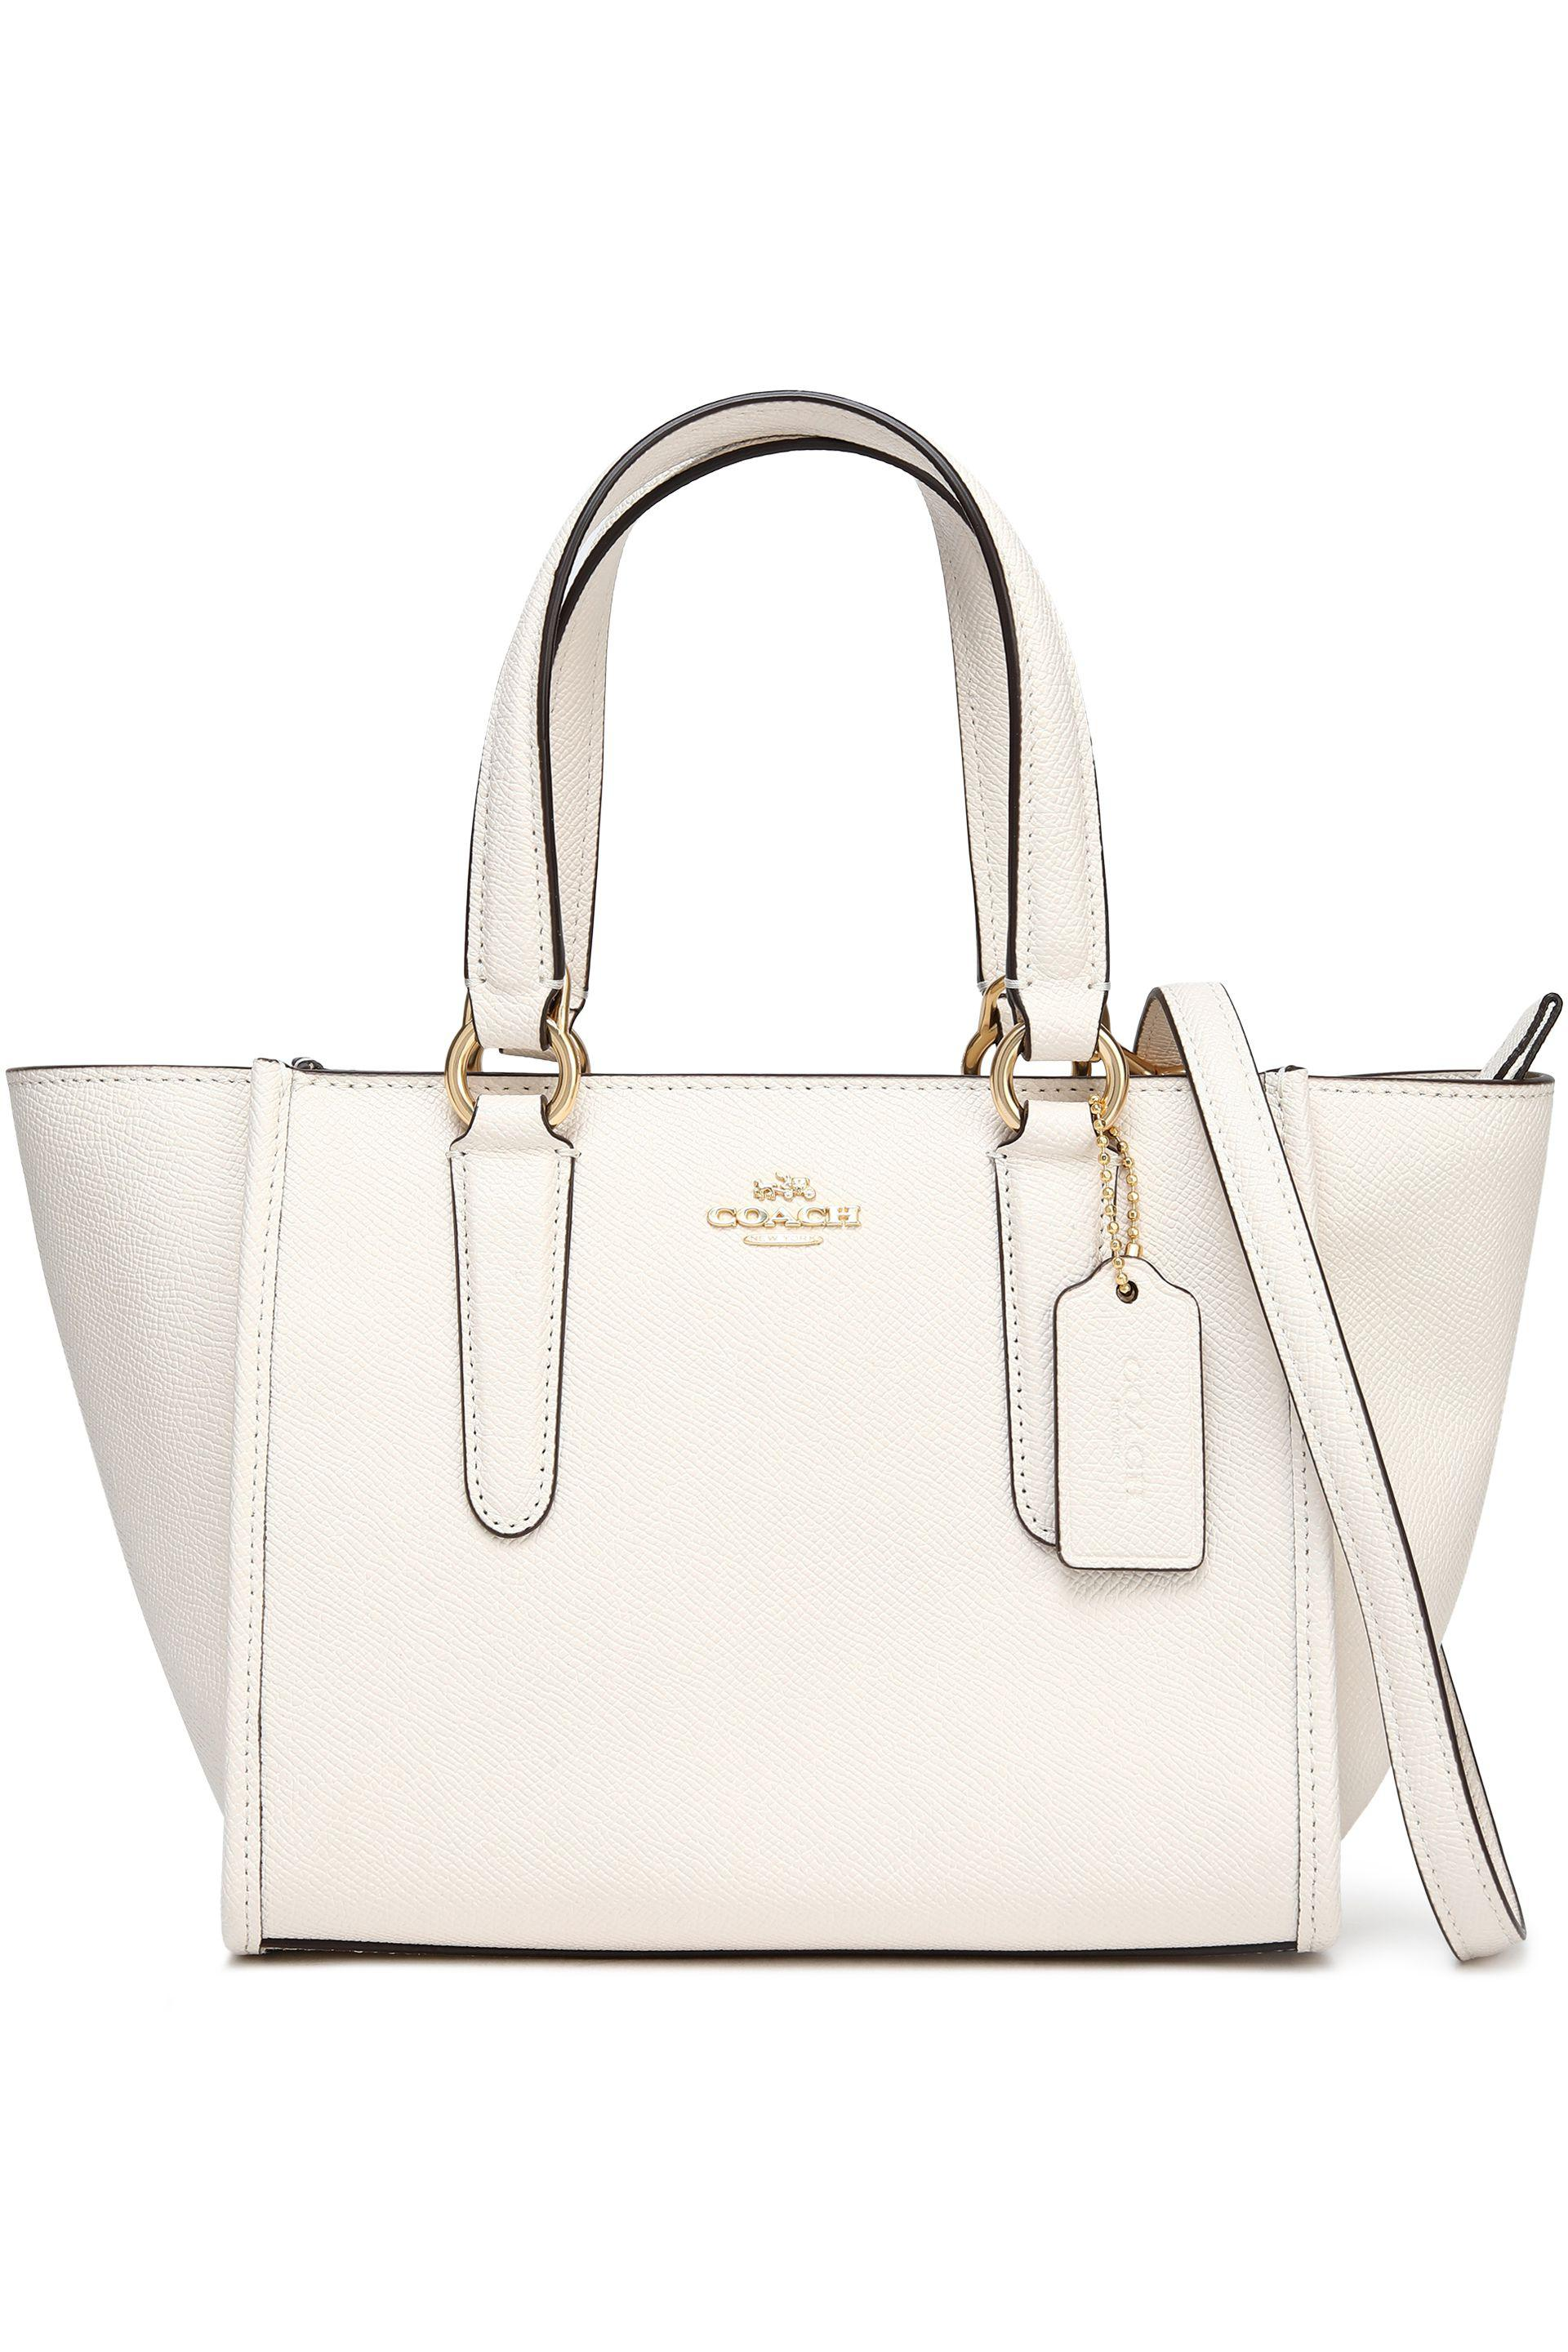 36275352ac8b9 ... real coach textured leather tote in white lyst 7866b 6b368